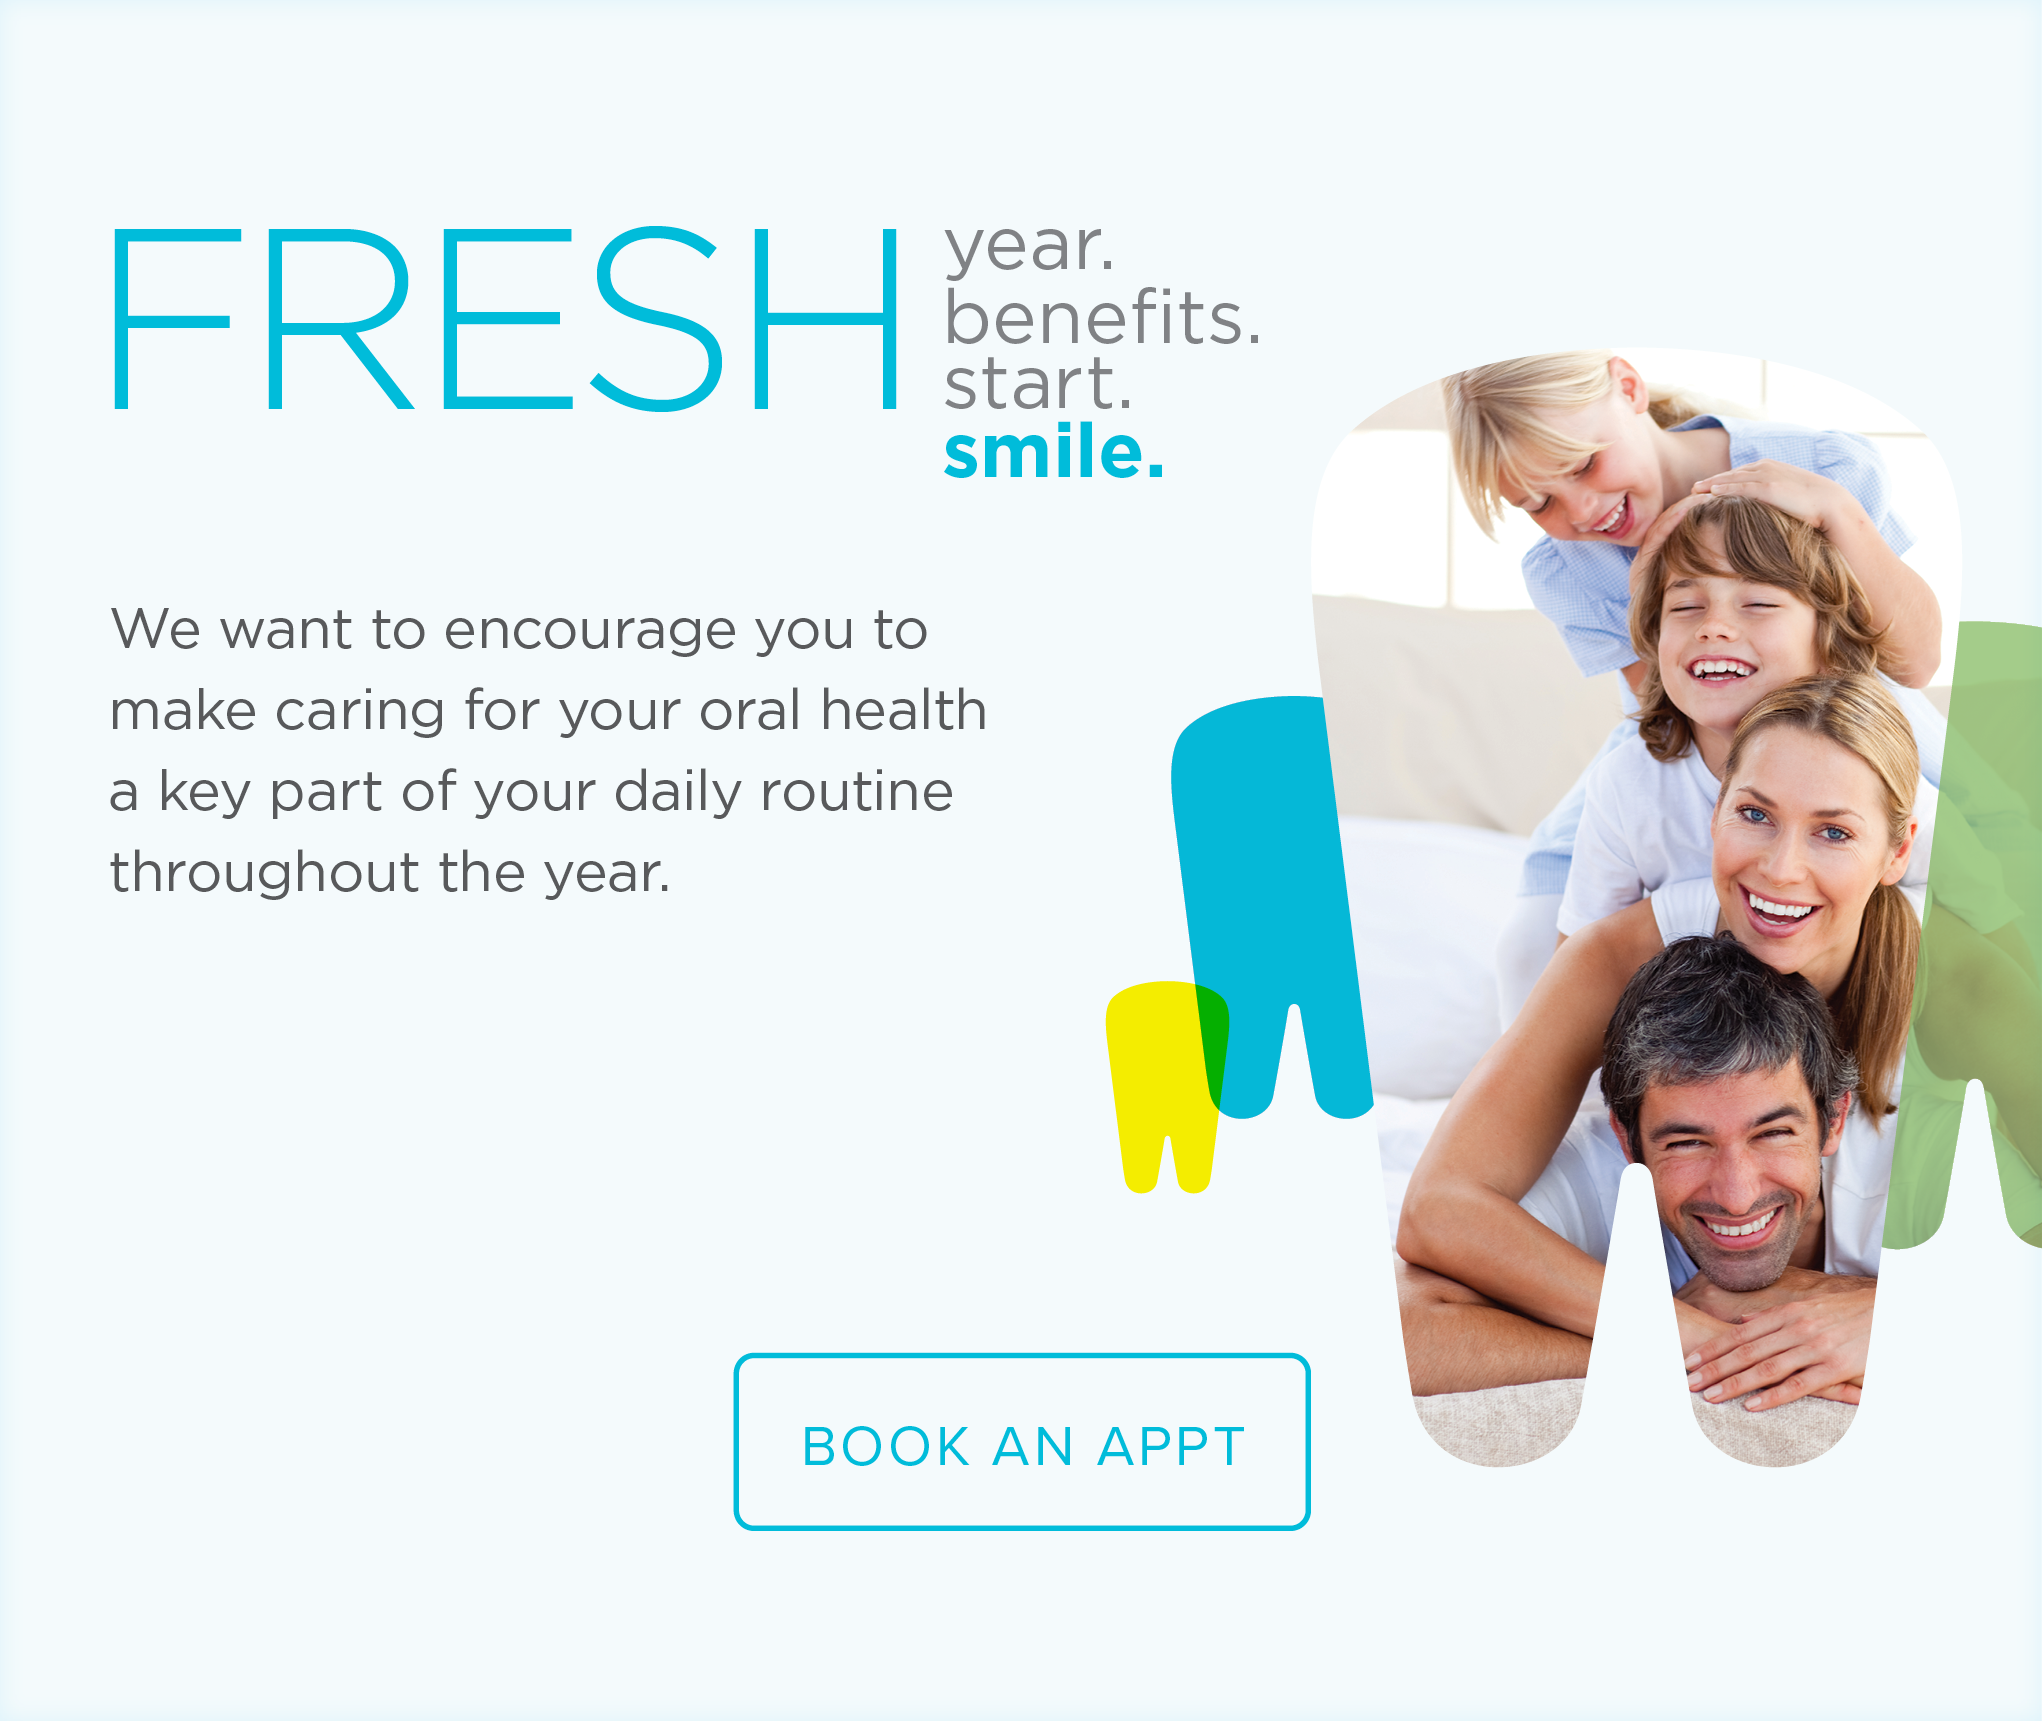 Simi Valley Dental Group and Orthodontics - Make the Most of Your Benefits